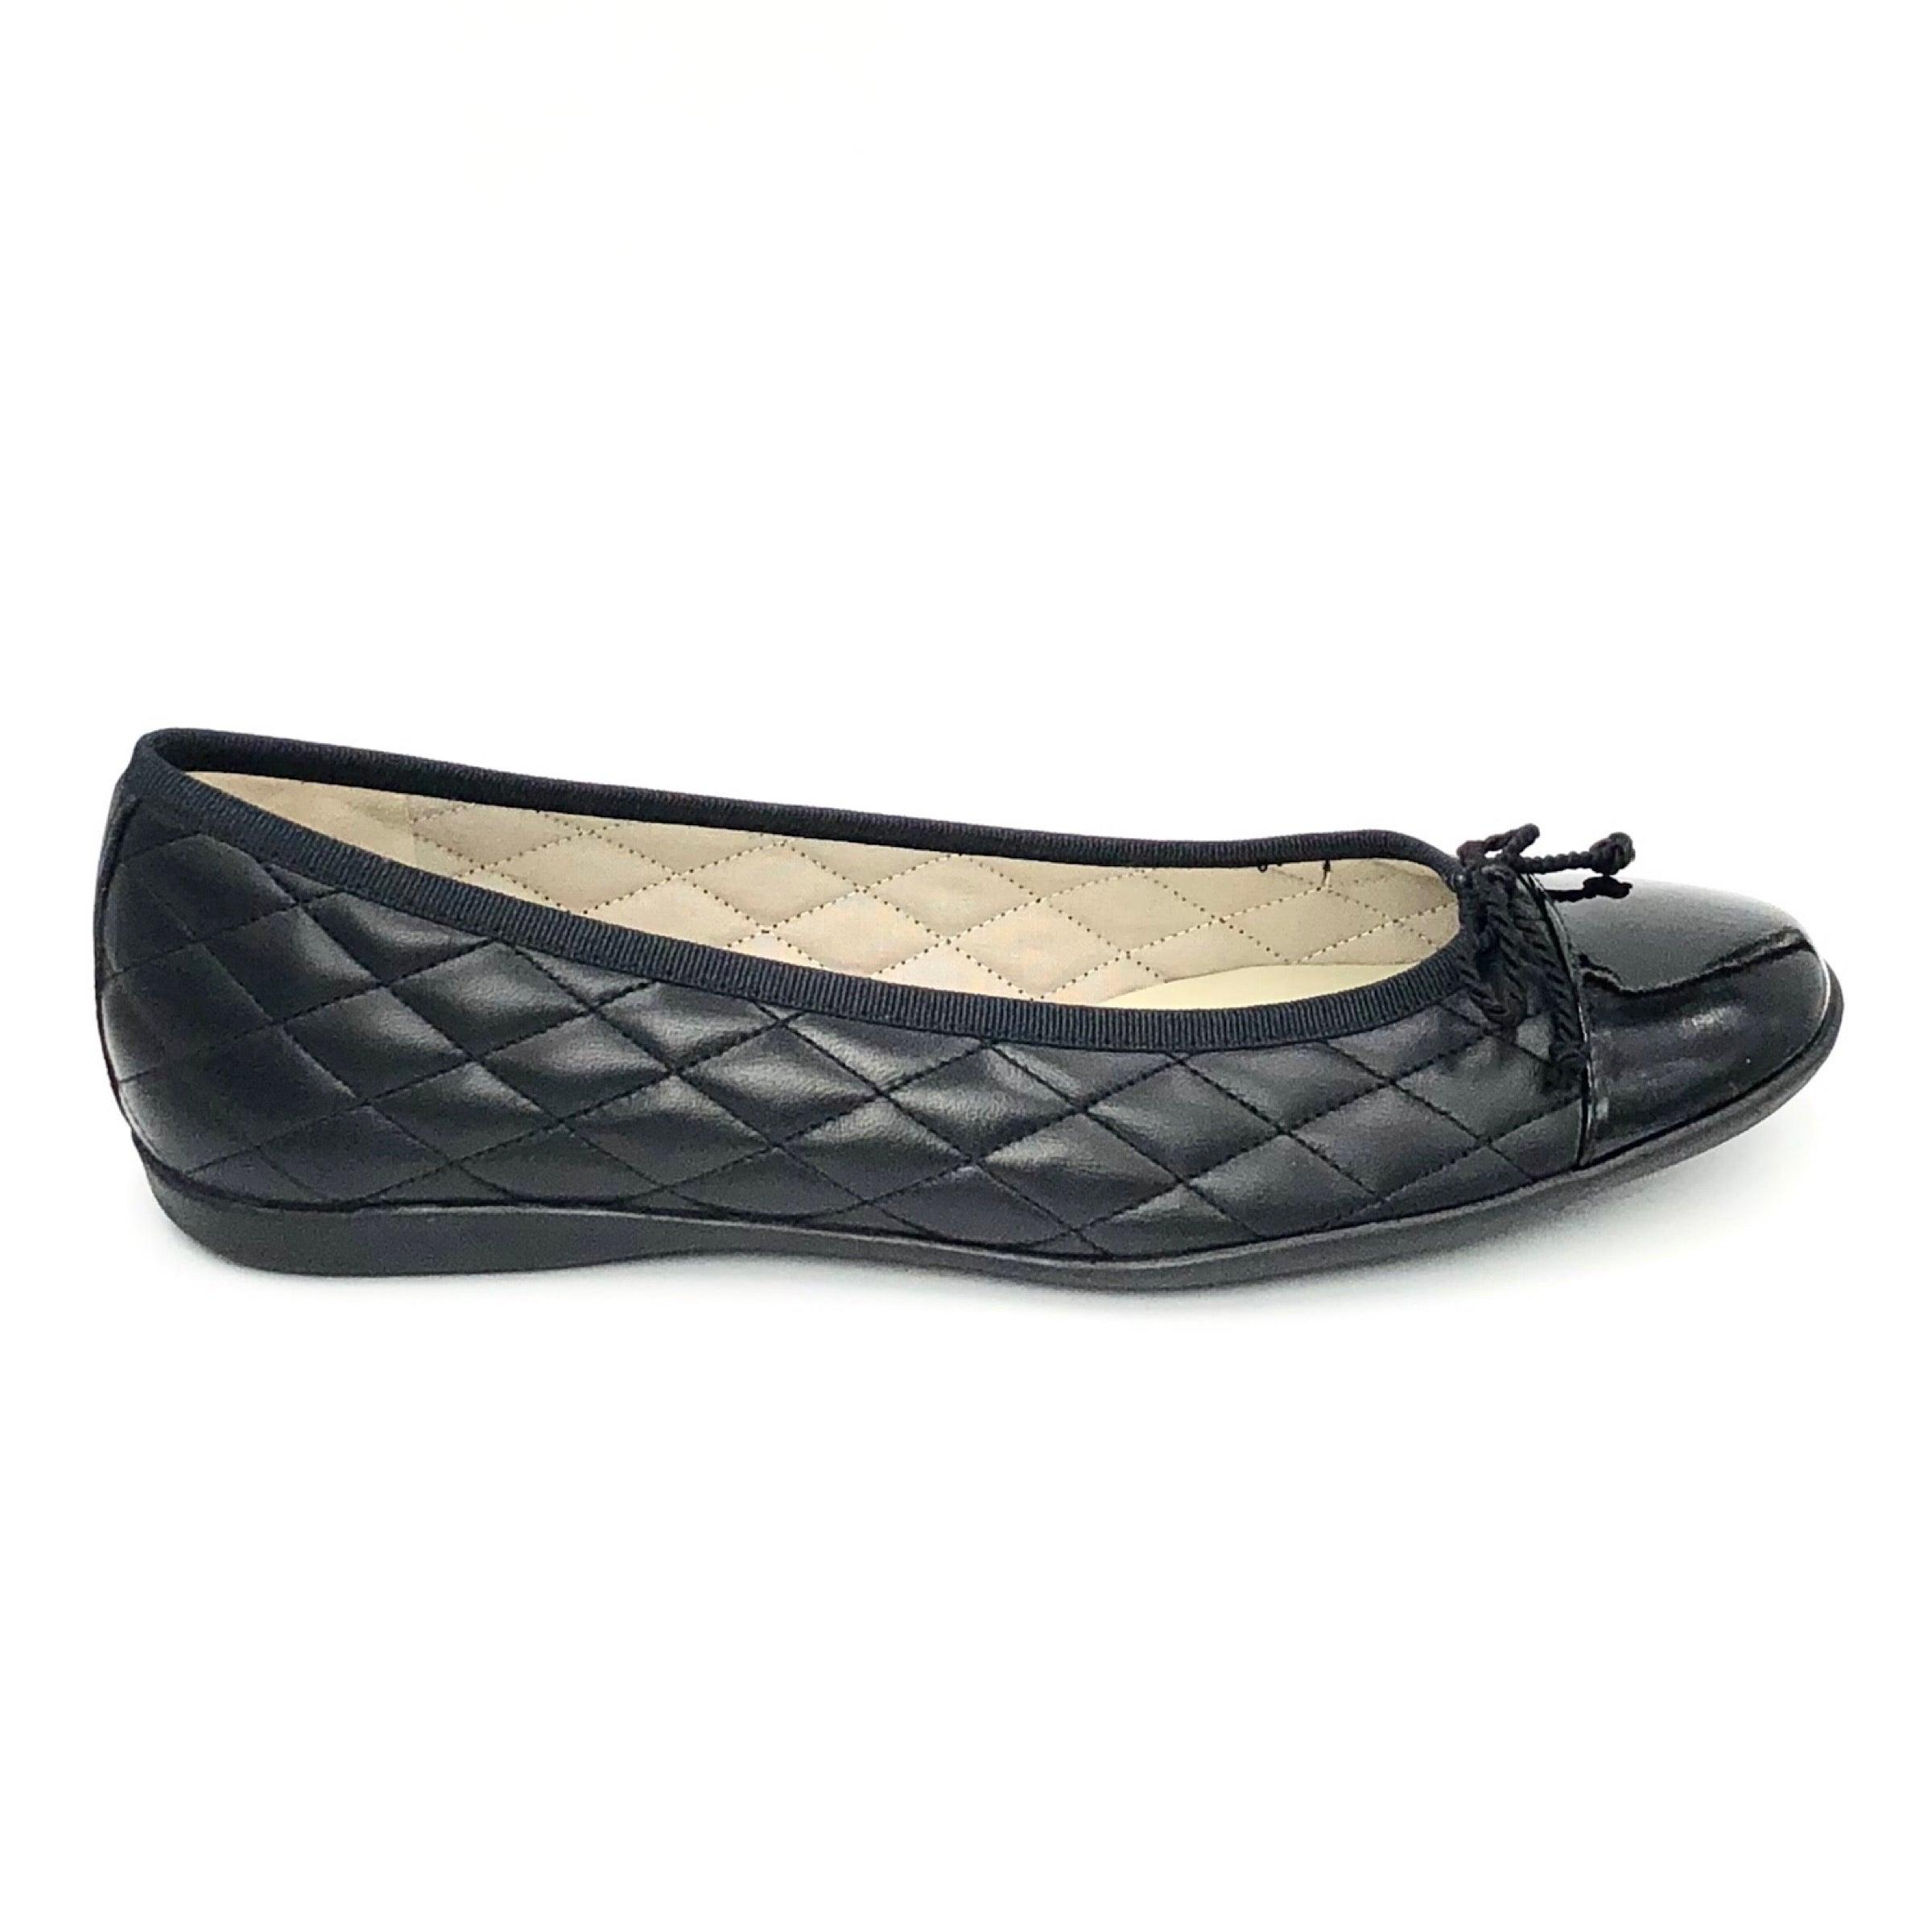 The Quilted Cap Toe Ballet in Black